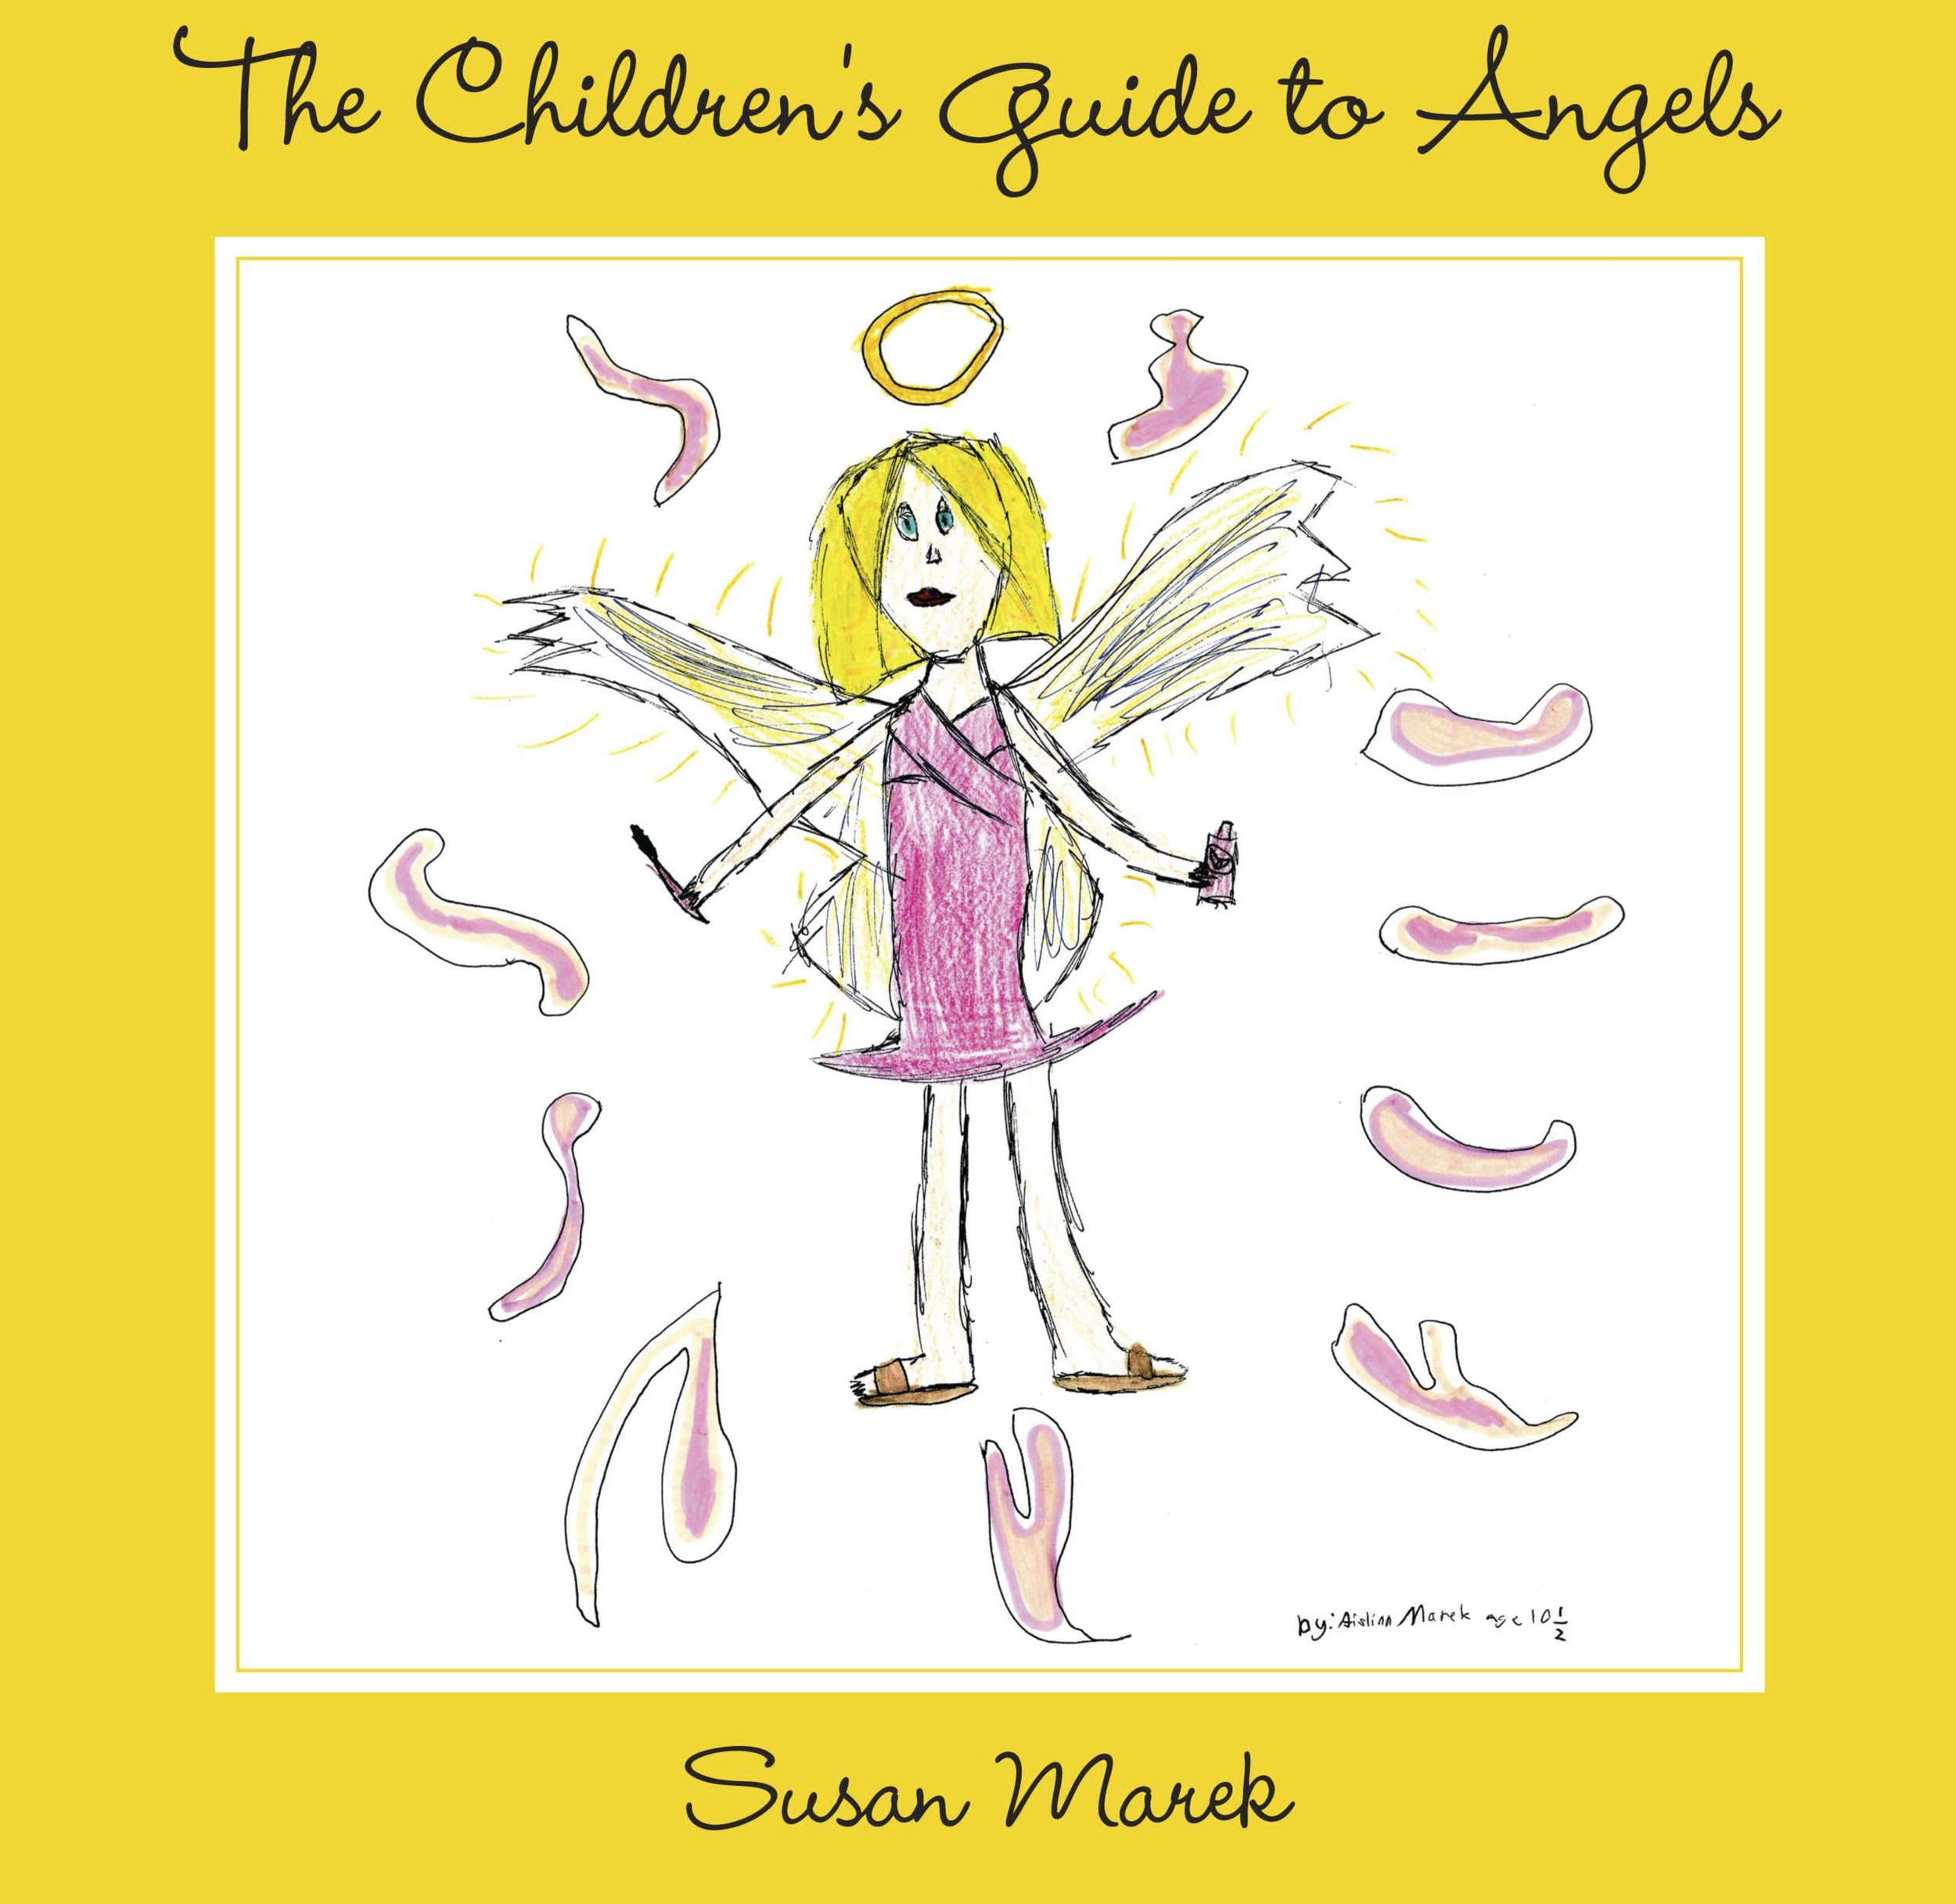 The Children's Guide to Angels - Available through Amazon.com, BarnesandNoble.com, and Powells.com. Also available for order from your favorite local bookseller.